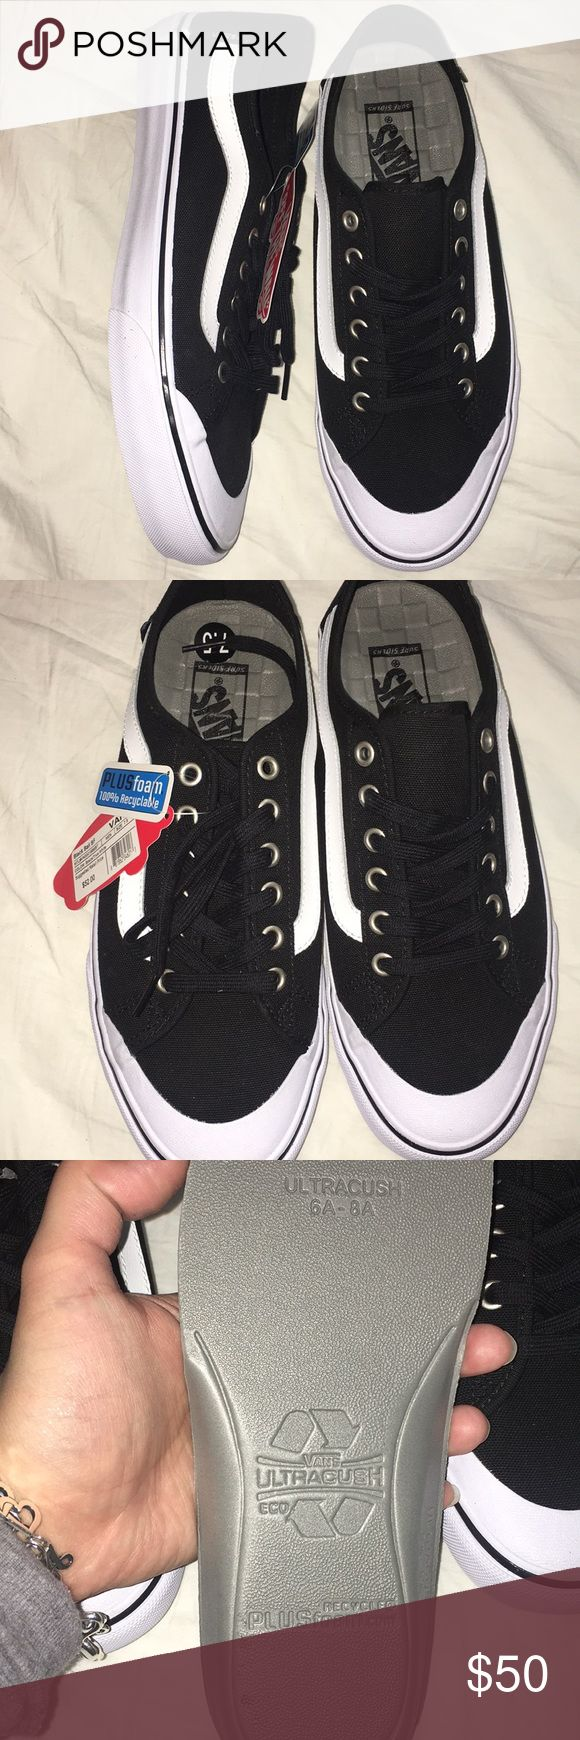 Black ball SF Vans Black white vans old skool design with ultra Cush removable insoles made of foam and recyclable. Shoe is recyclable.  Men's size7.5 and women's size 9 Vans Shoes Sneakers